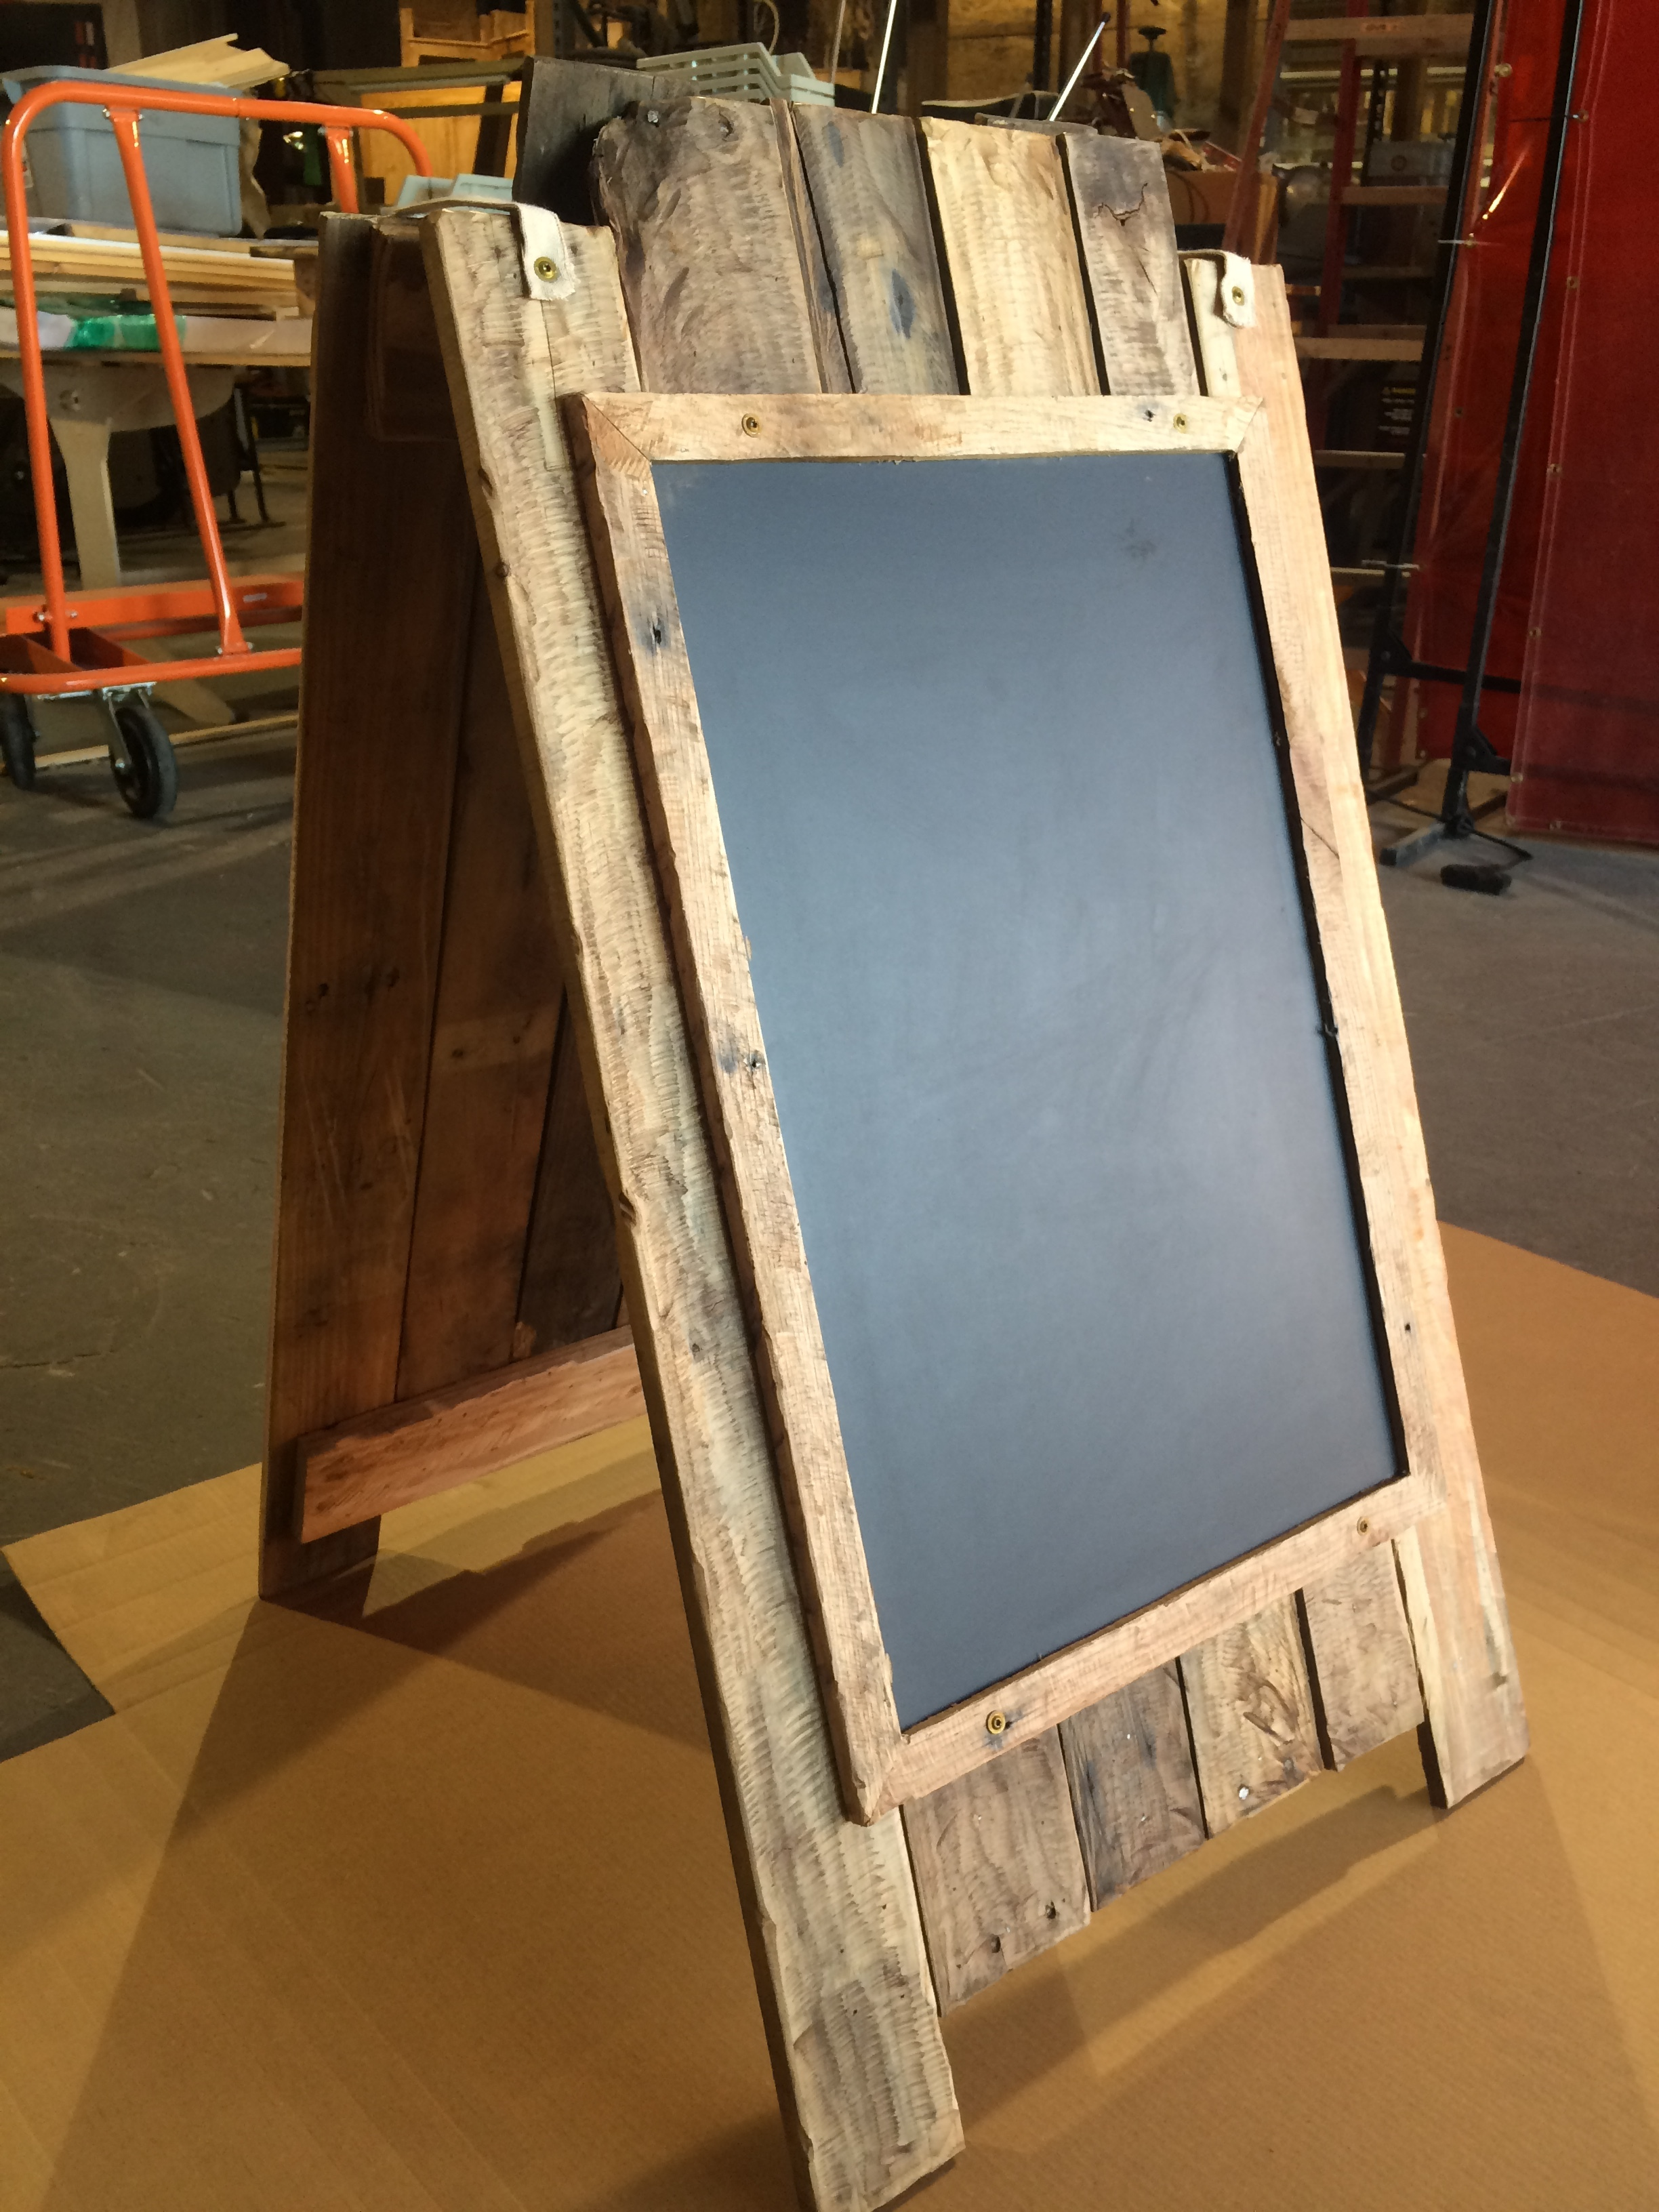 Double-sided chalkboard A-frame